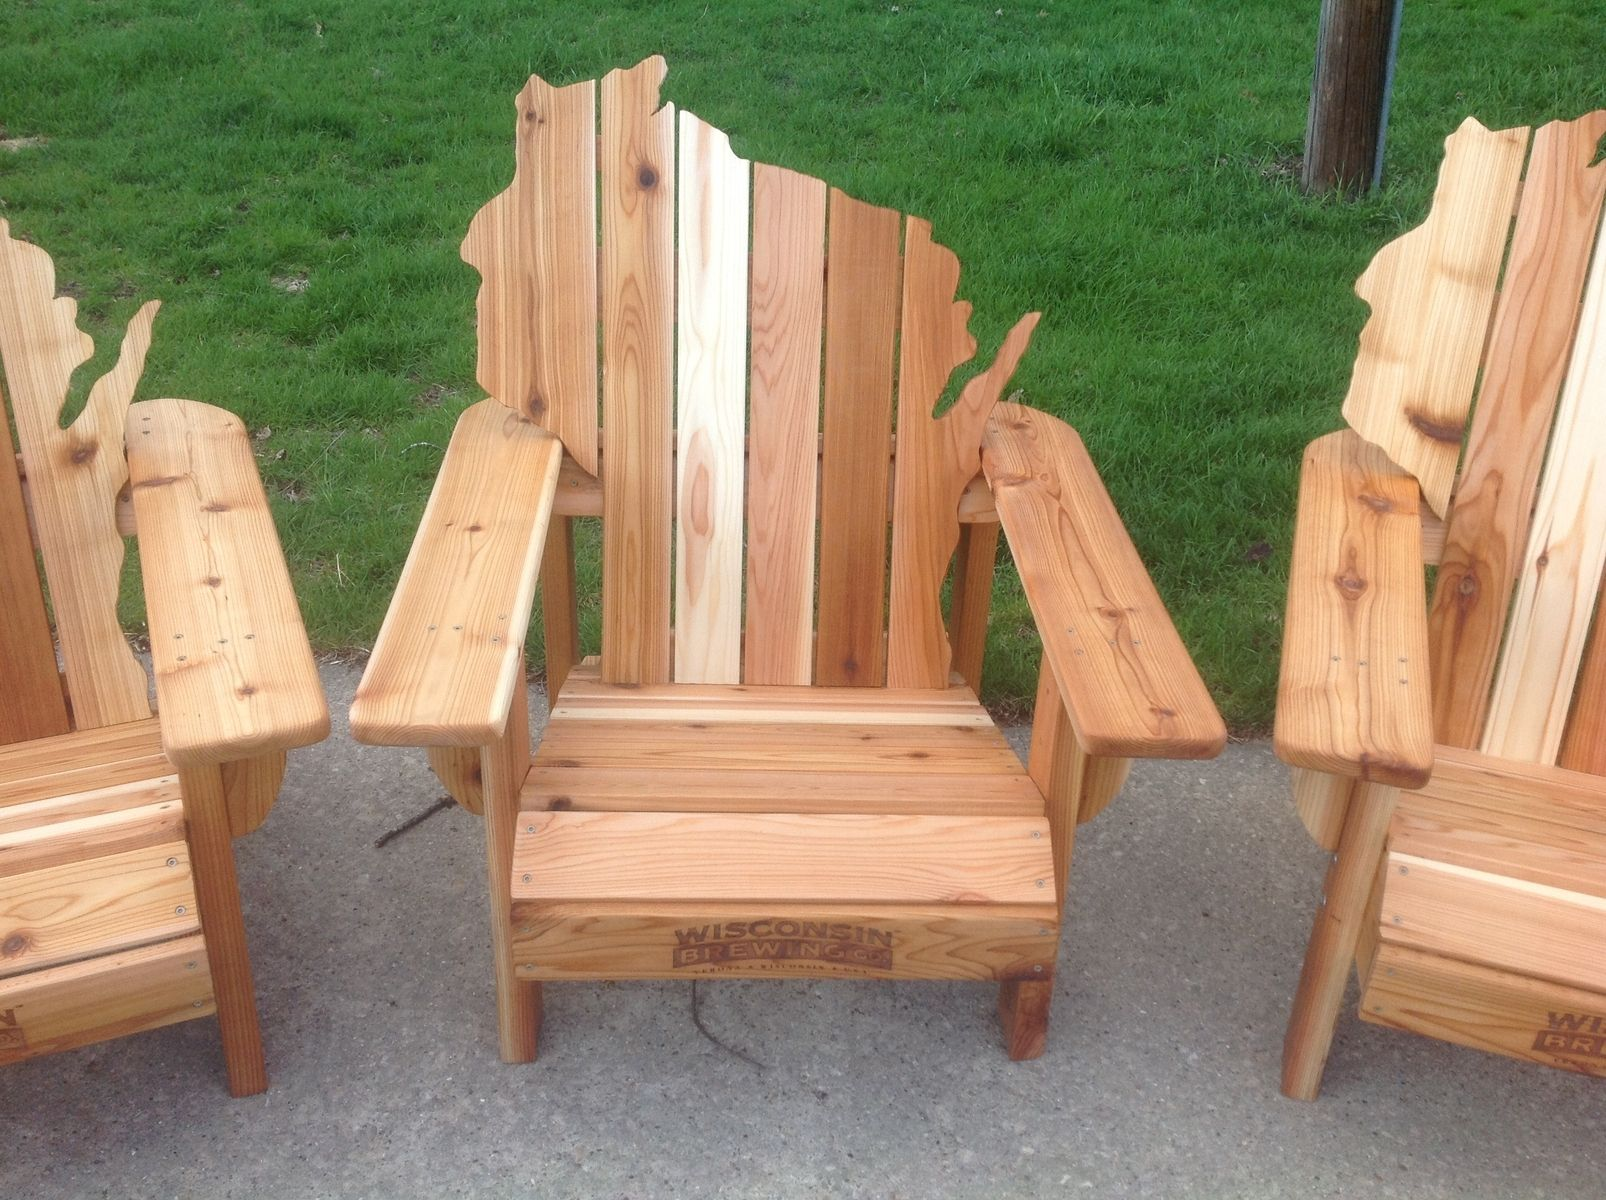 Handmade Cedar Adirondack Wisconsin Chairs With  : 85464537586 from www.custommade.com size 1606 x 1200 jpeg 311kB